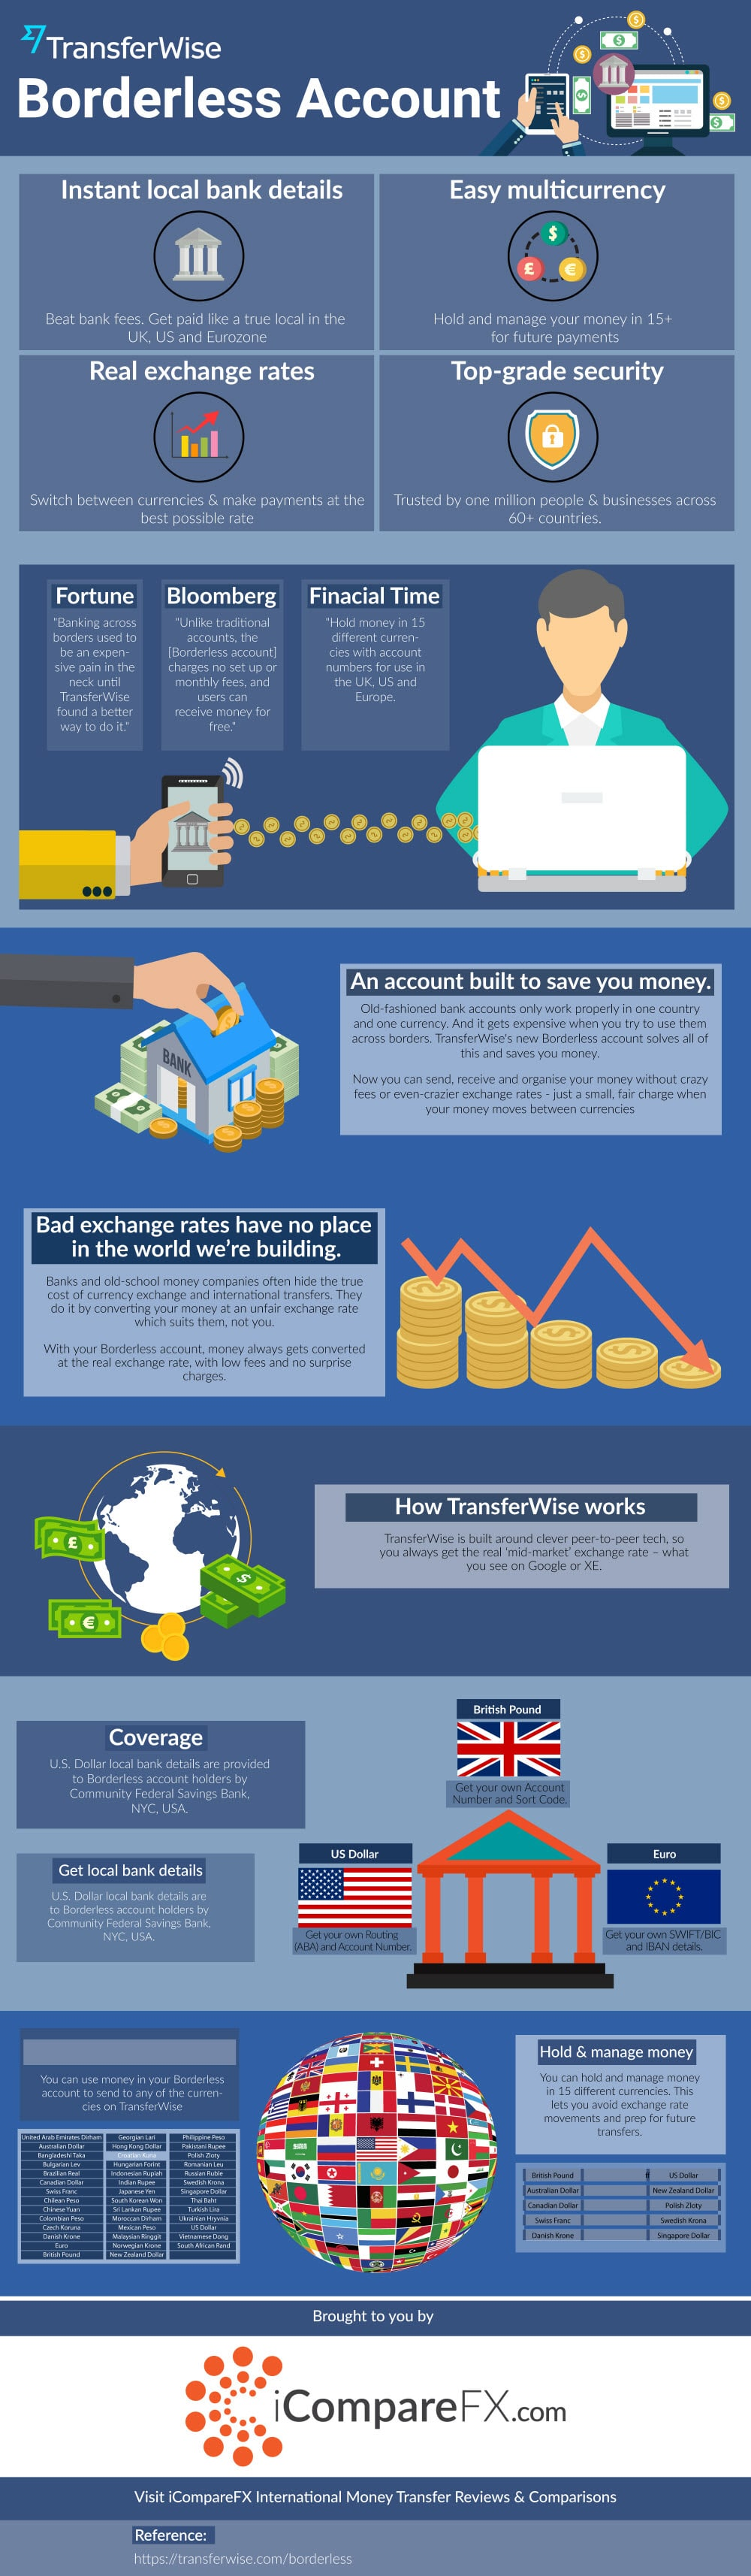 TransferWise Borderless account infographic